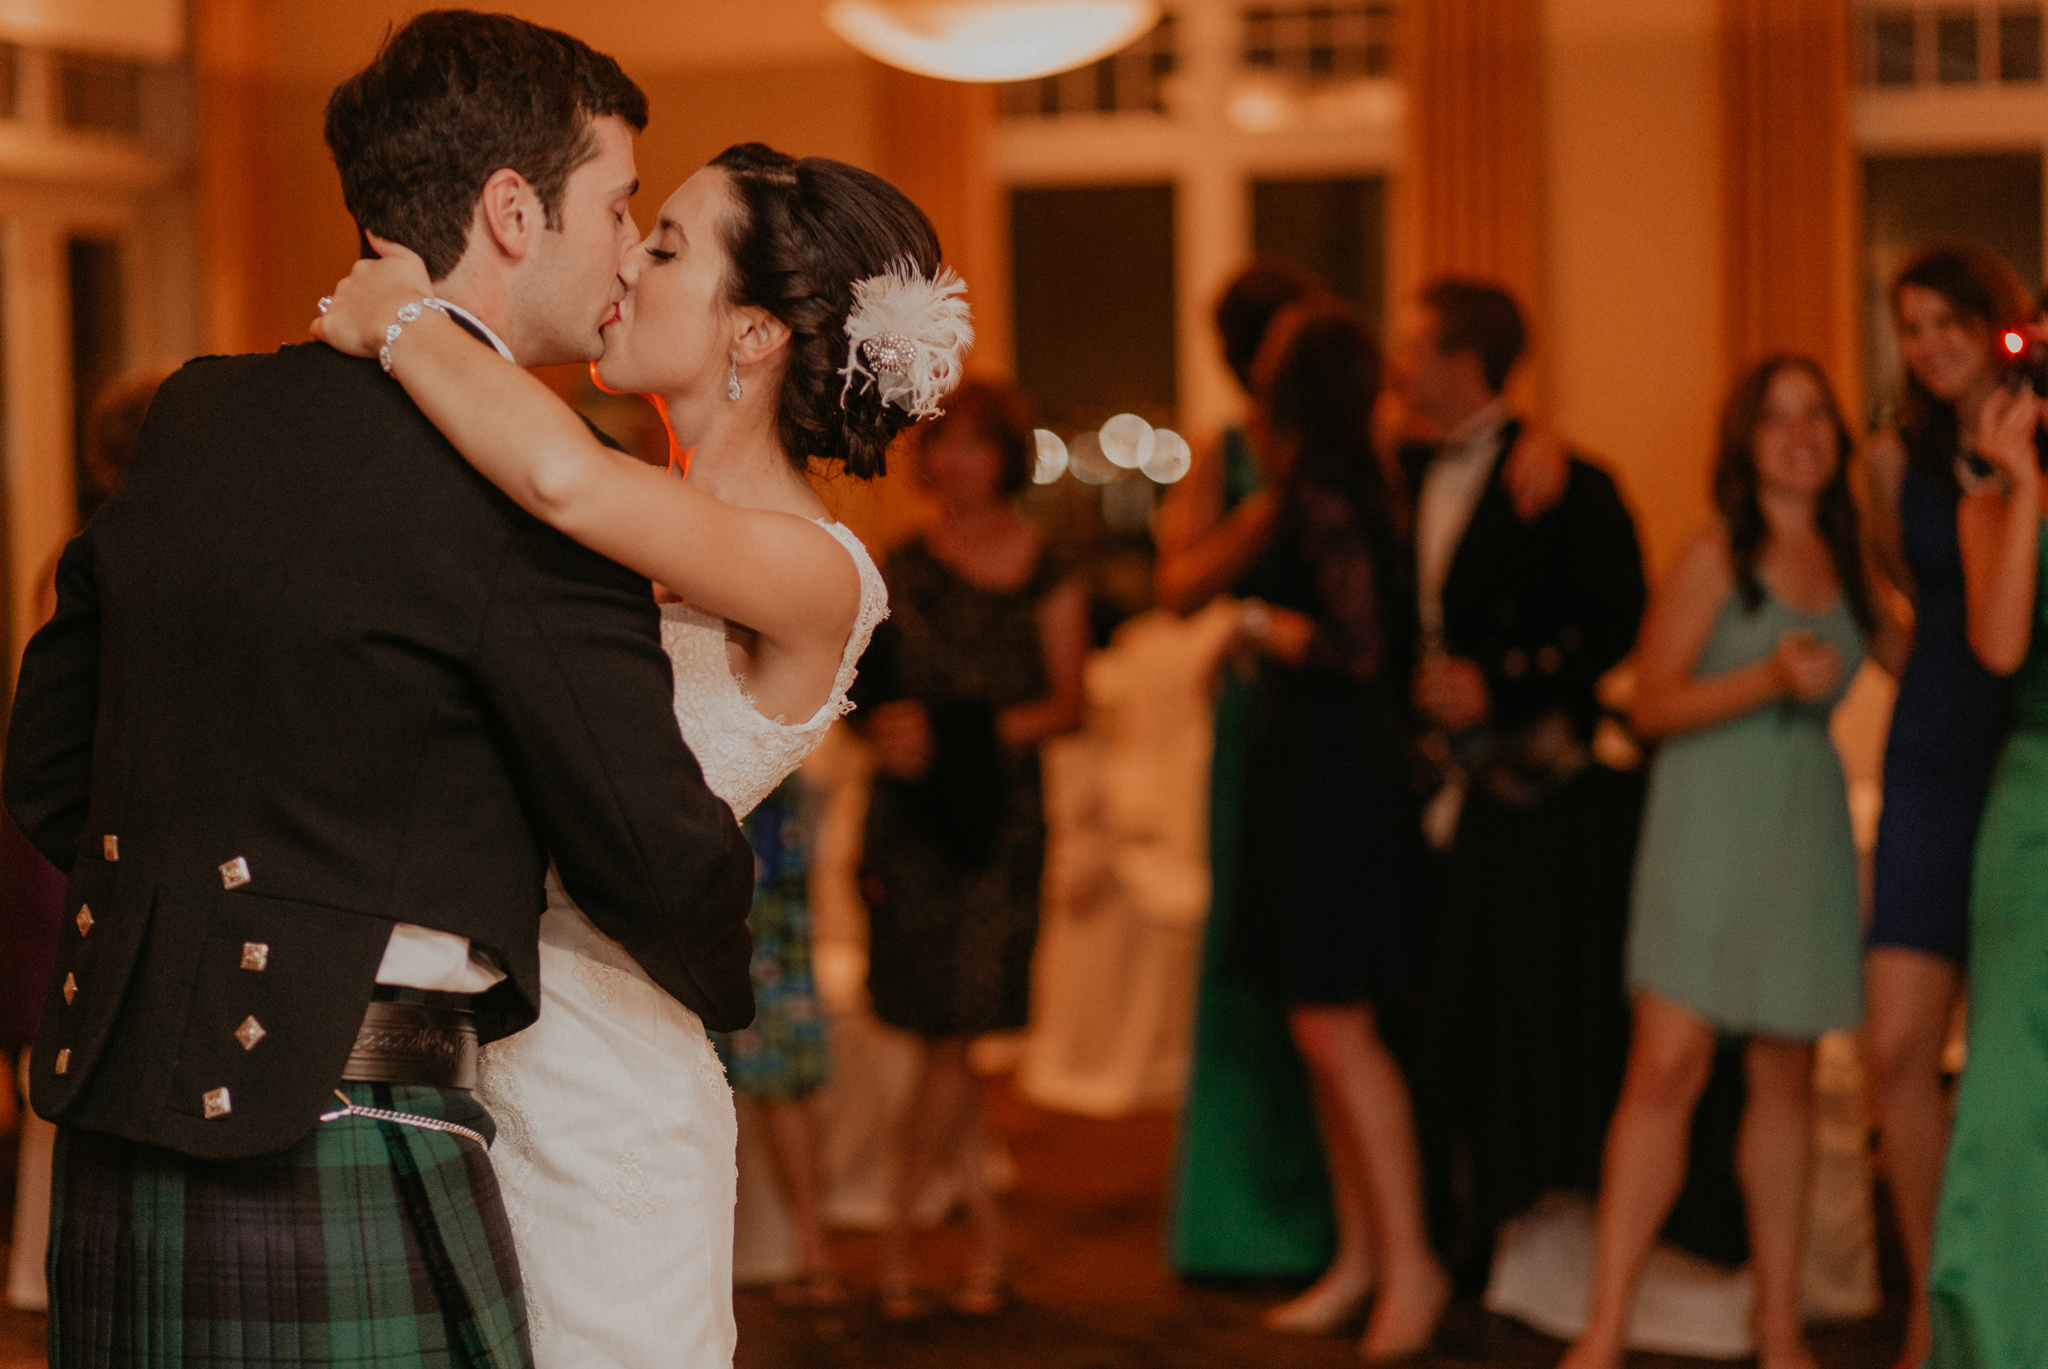 Candid photo of bride and groom kissing during first dance documentary wedding picture